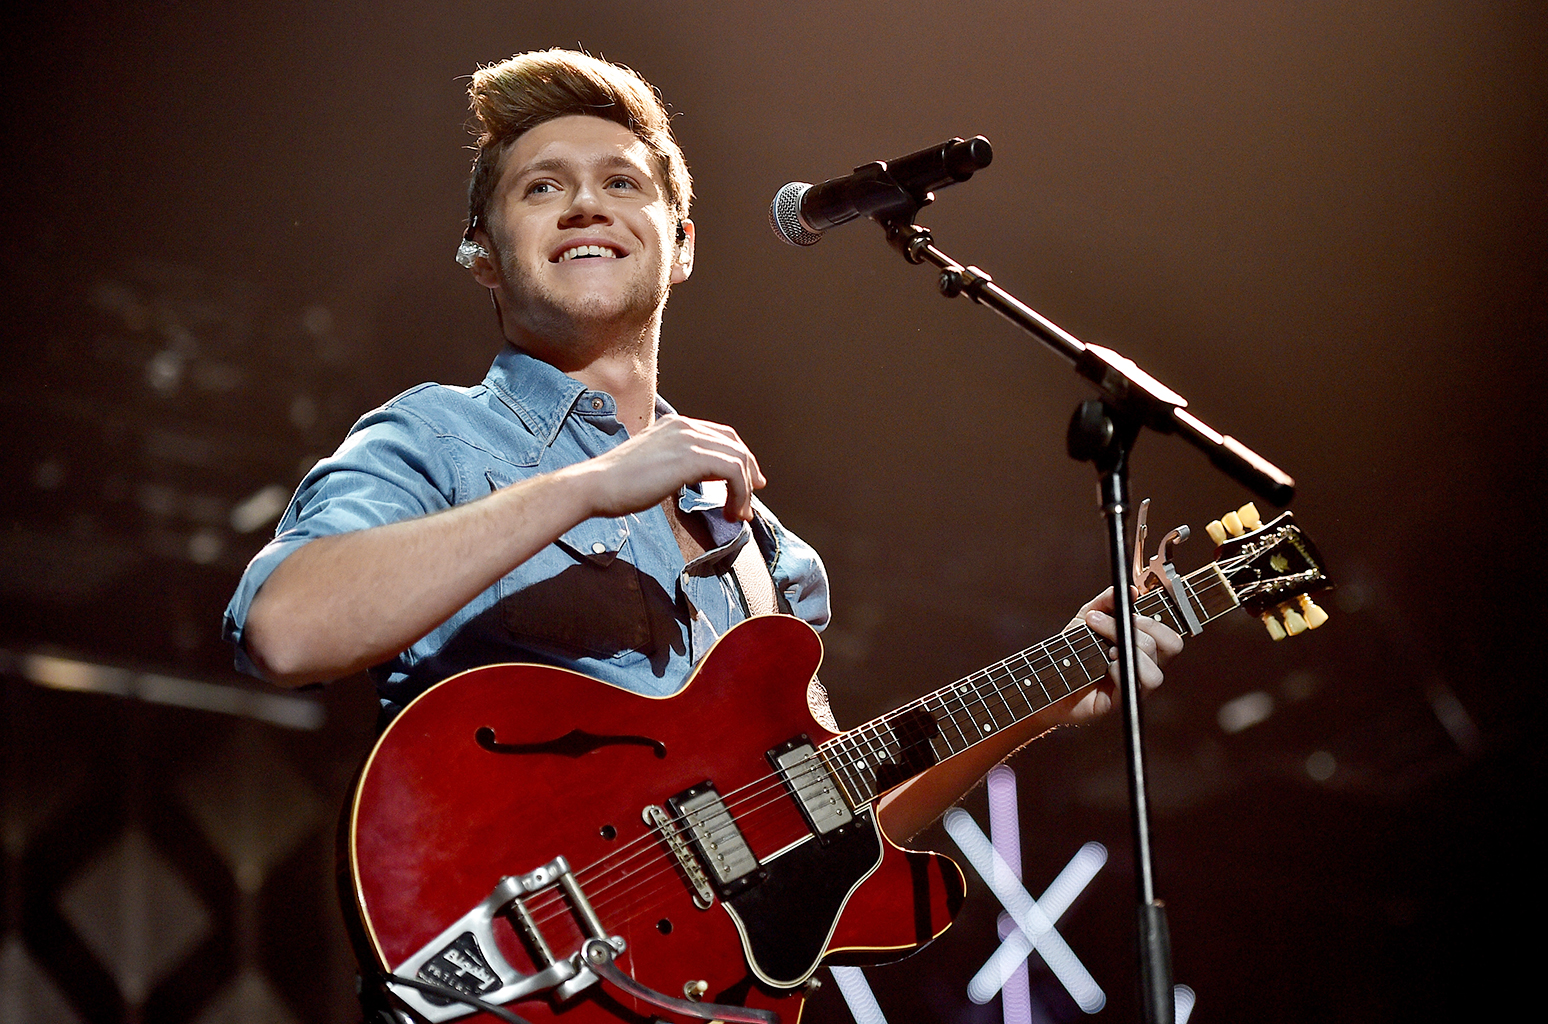 Niall Horan Wallpapers High Quality | Download Free